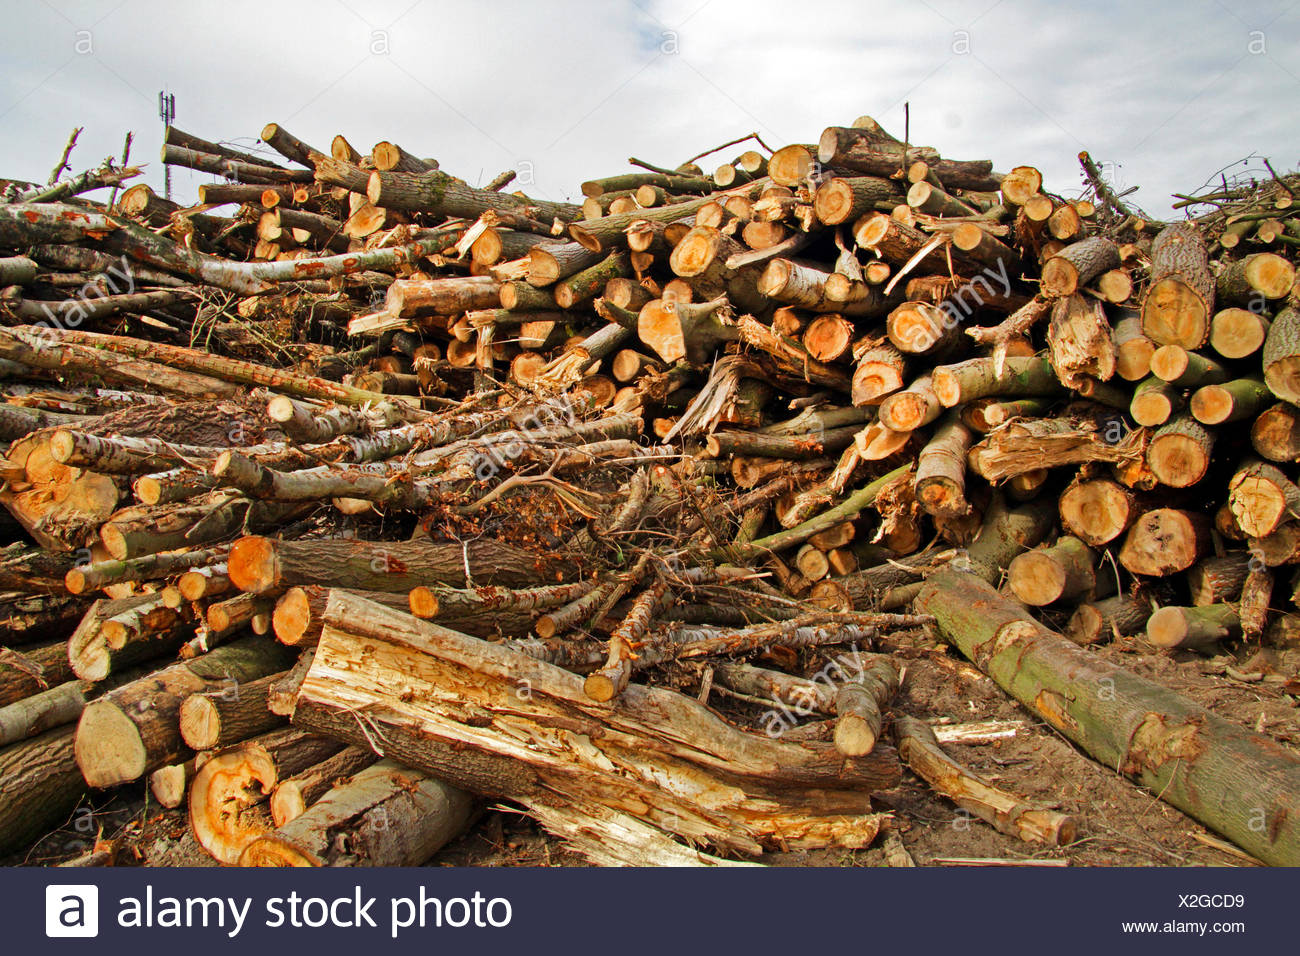 timber storage after deforestation, Germany - Stock Image